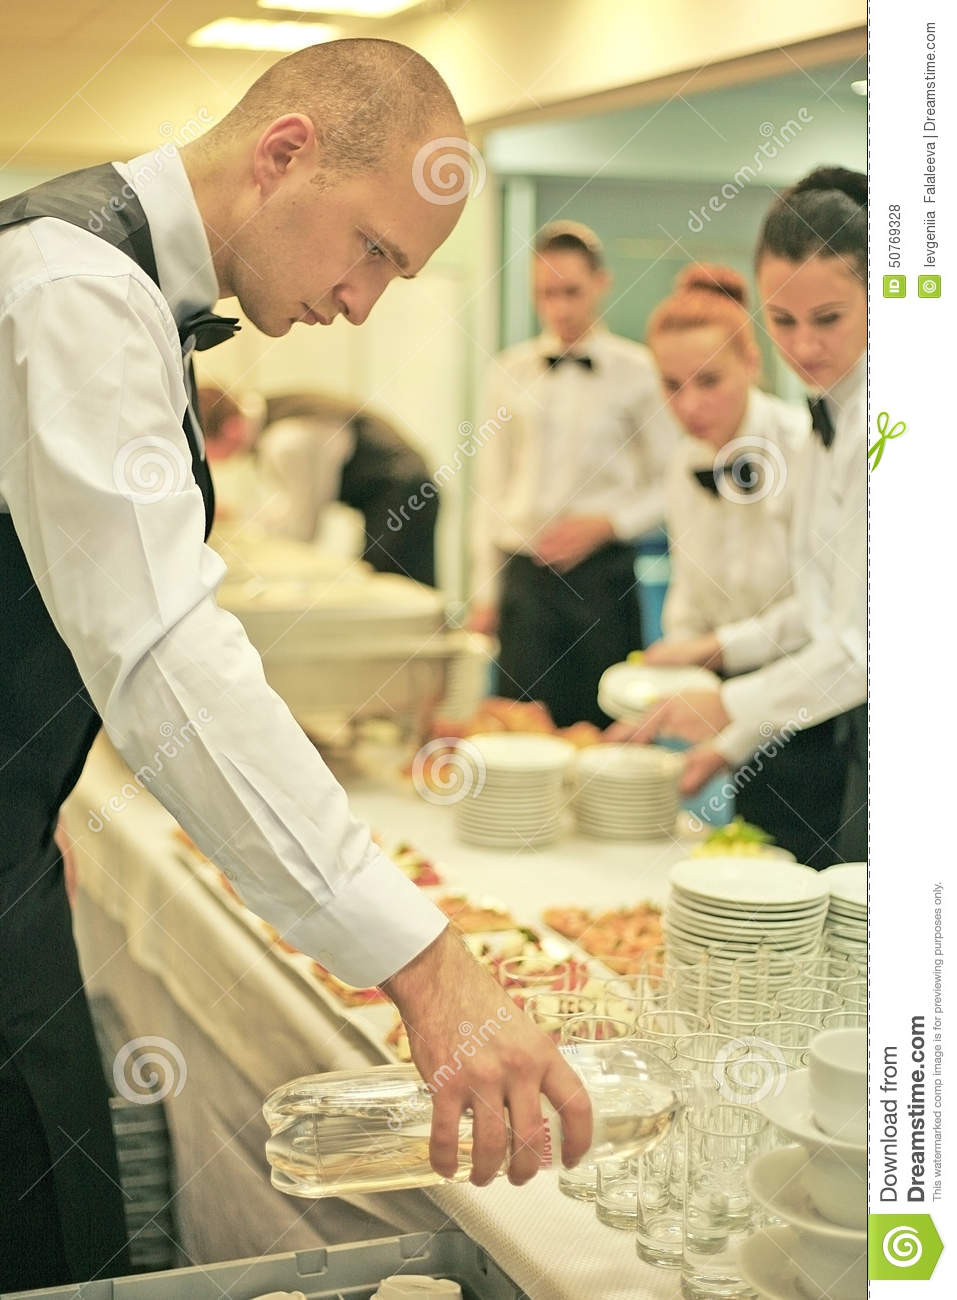 a waiter stock photo